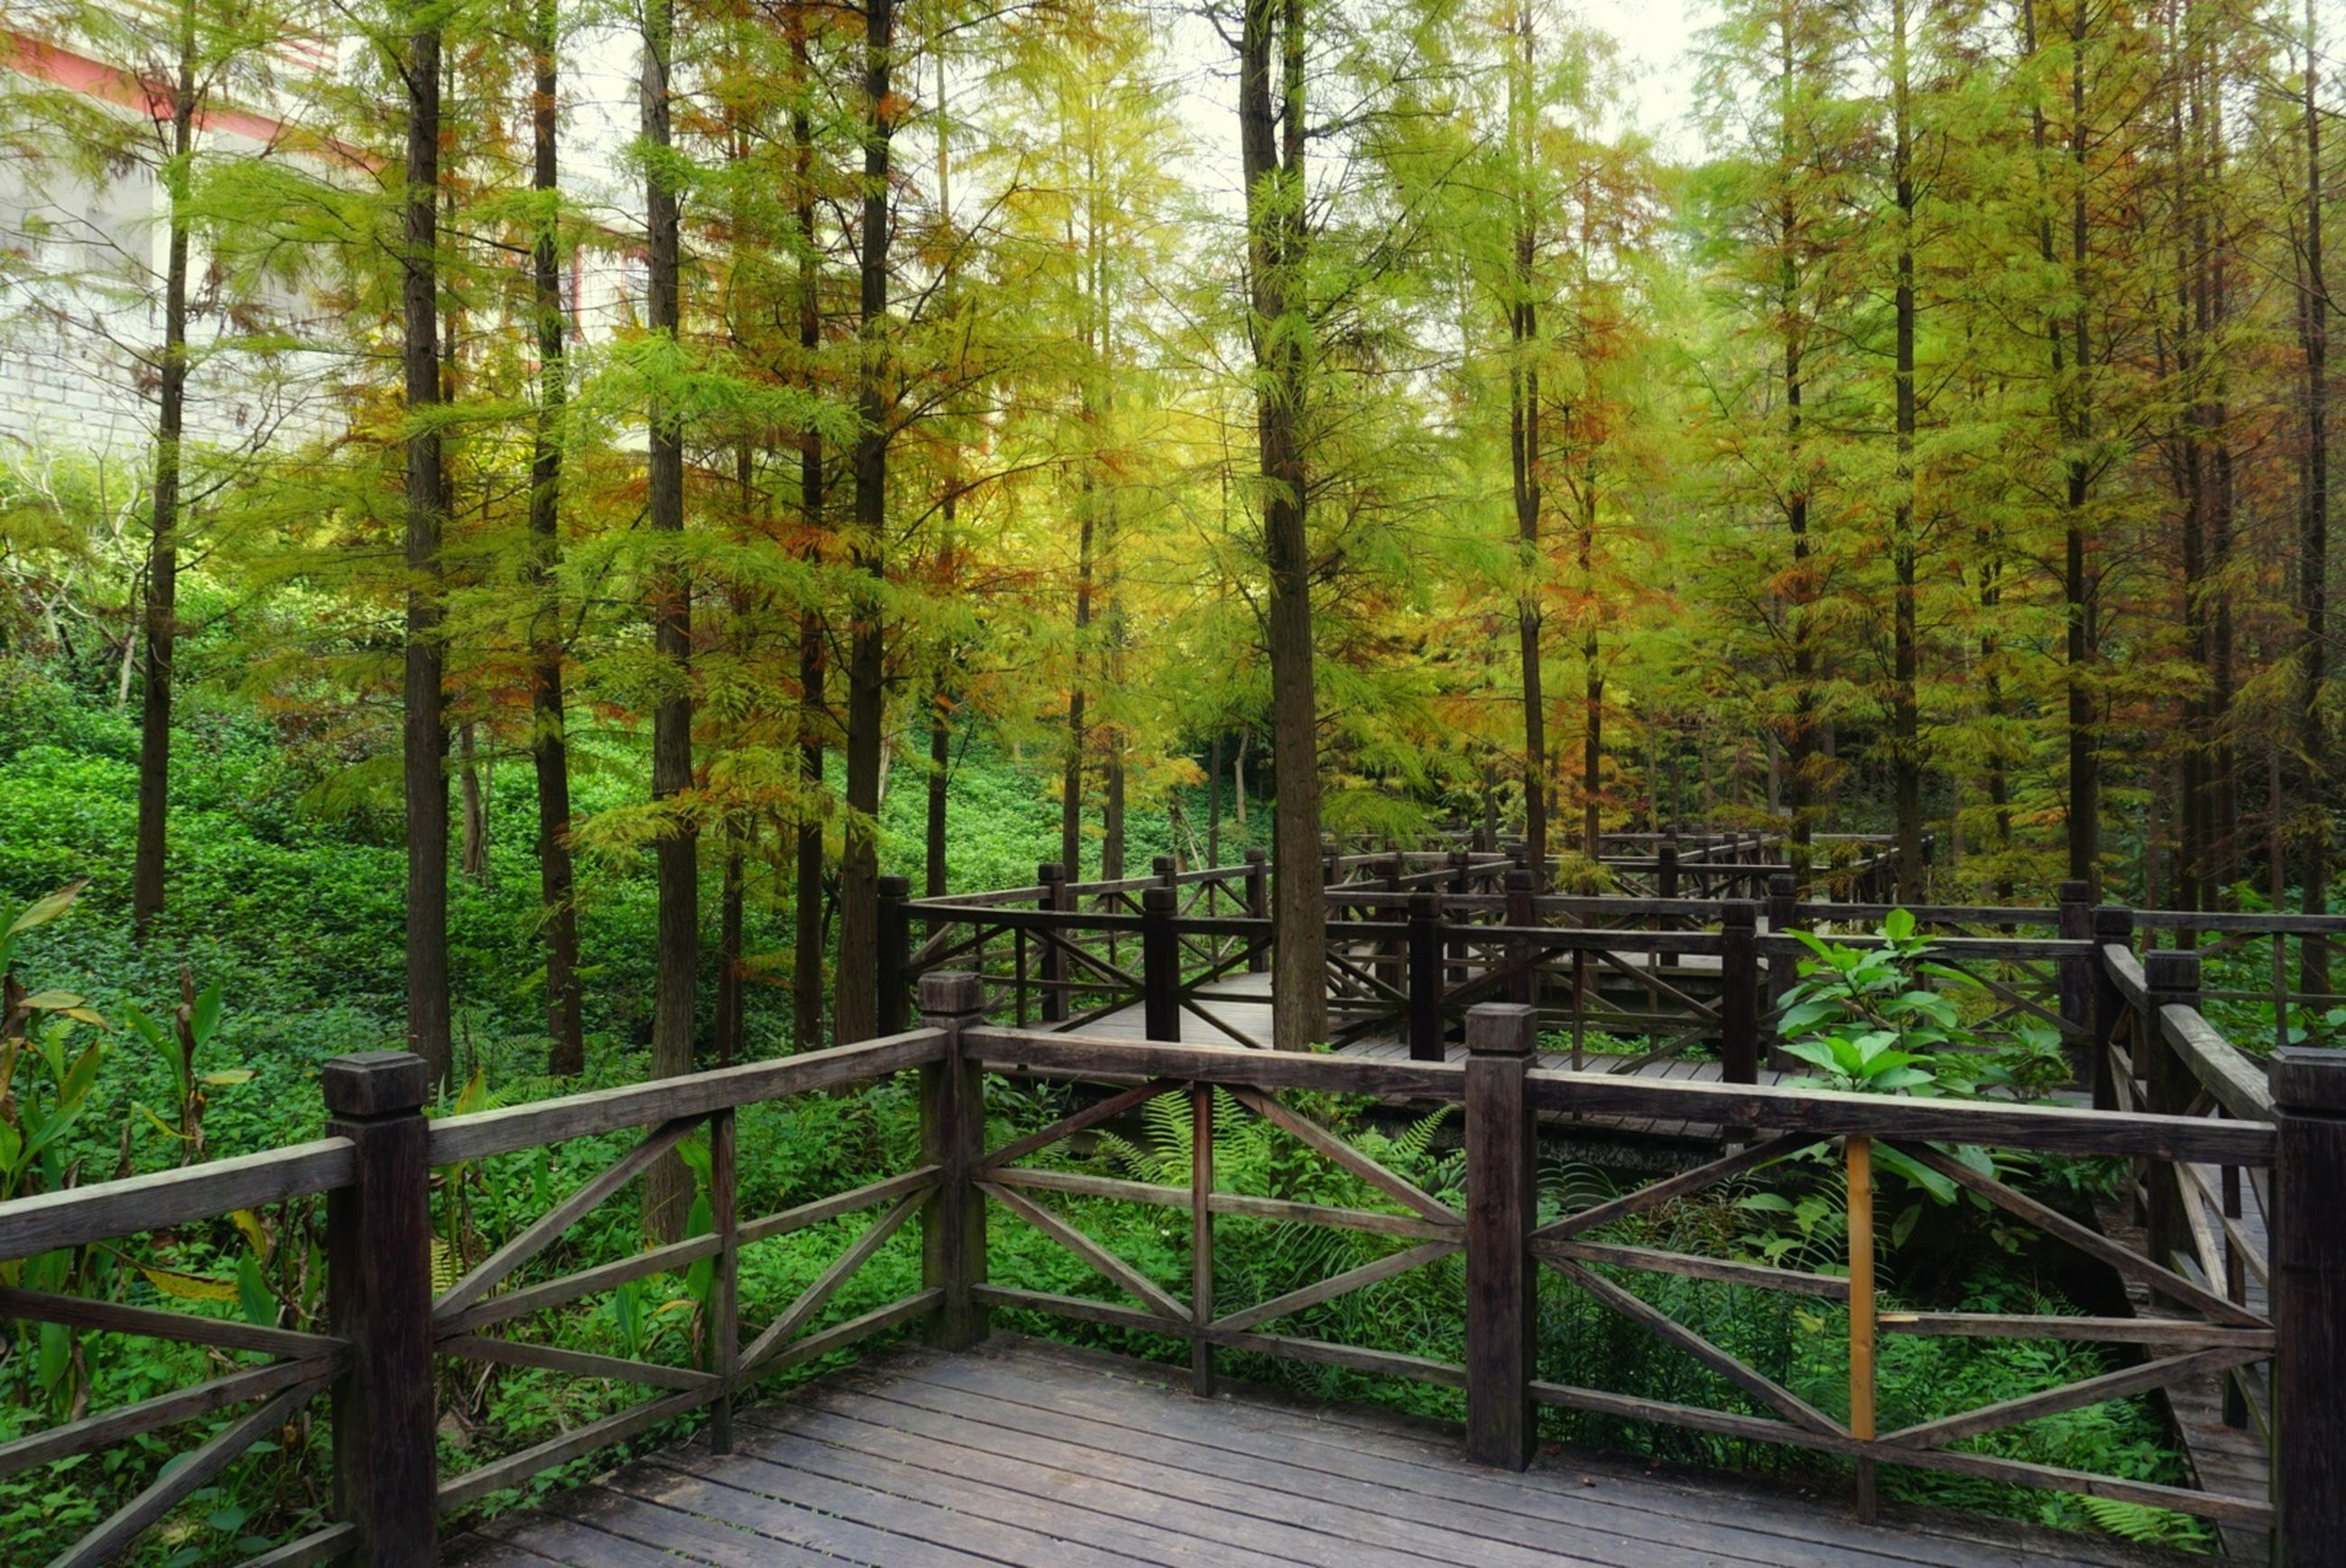 tree, forest, nature, railing, beauty in nature, no people, green color, tranquility, outdoors, day, bamboo - plant, bamboo grove